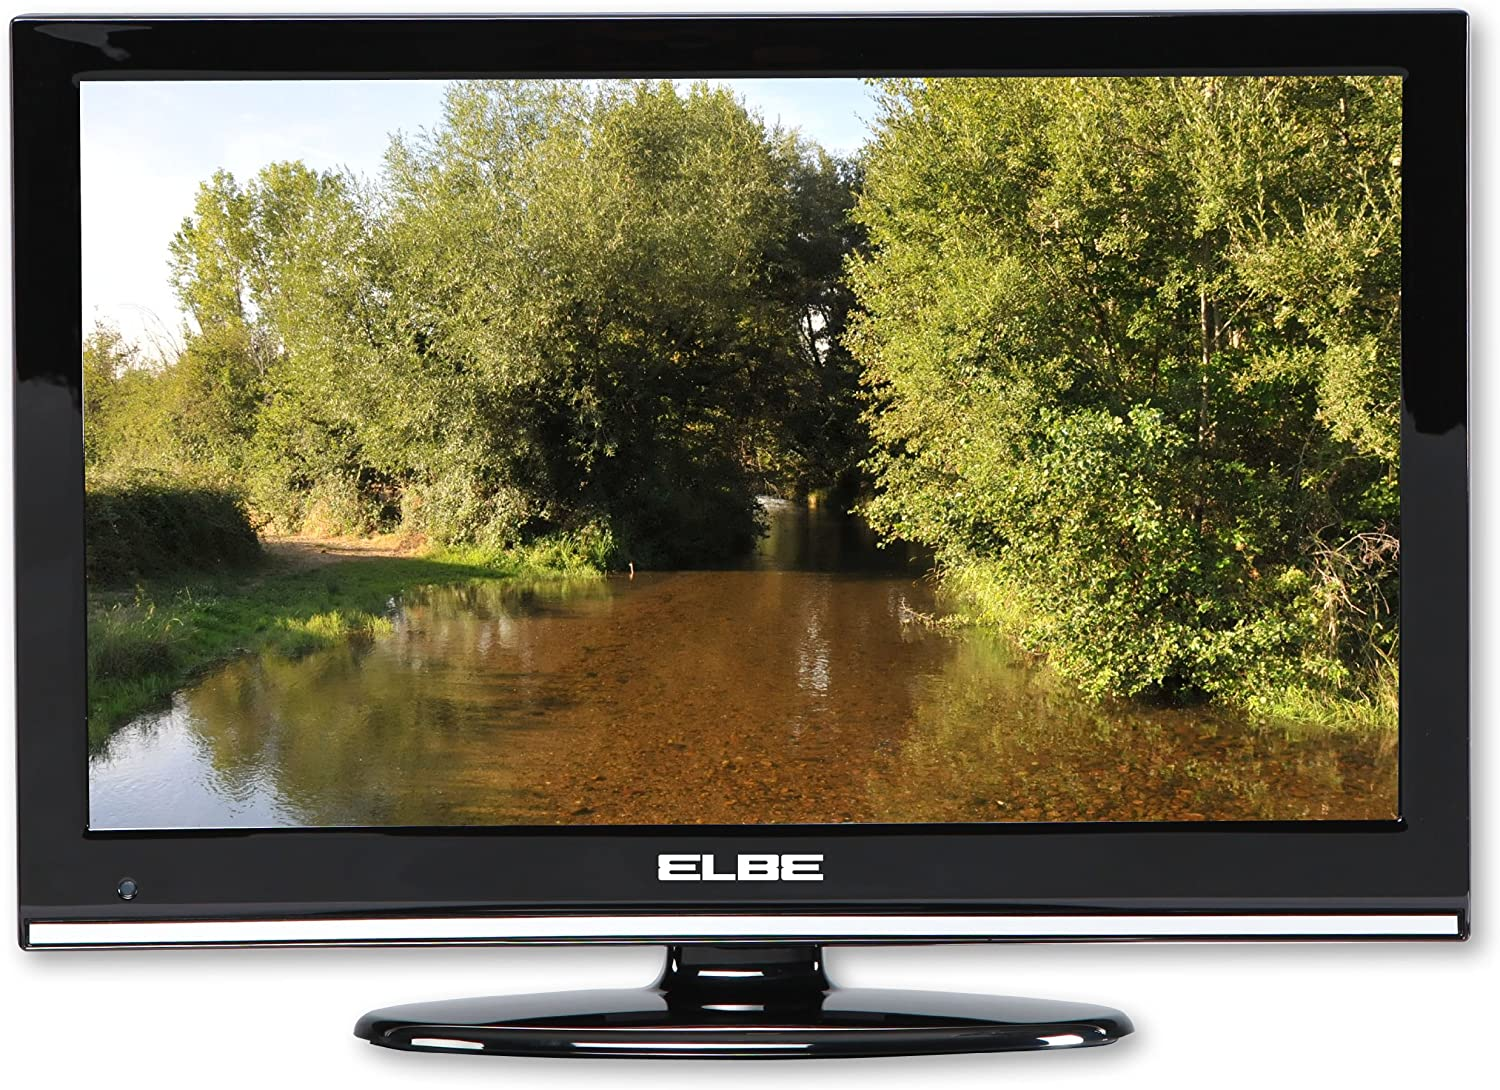 Elbe XTV2206LED - Televisión LED de 22 Pulgadas Full HD, Color Negro: Amazon.es: Electrónica